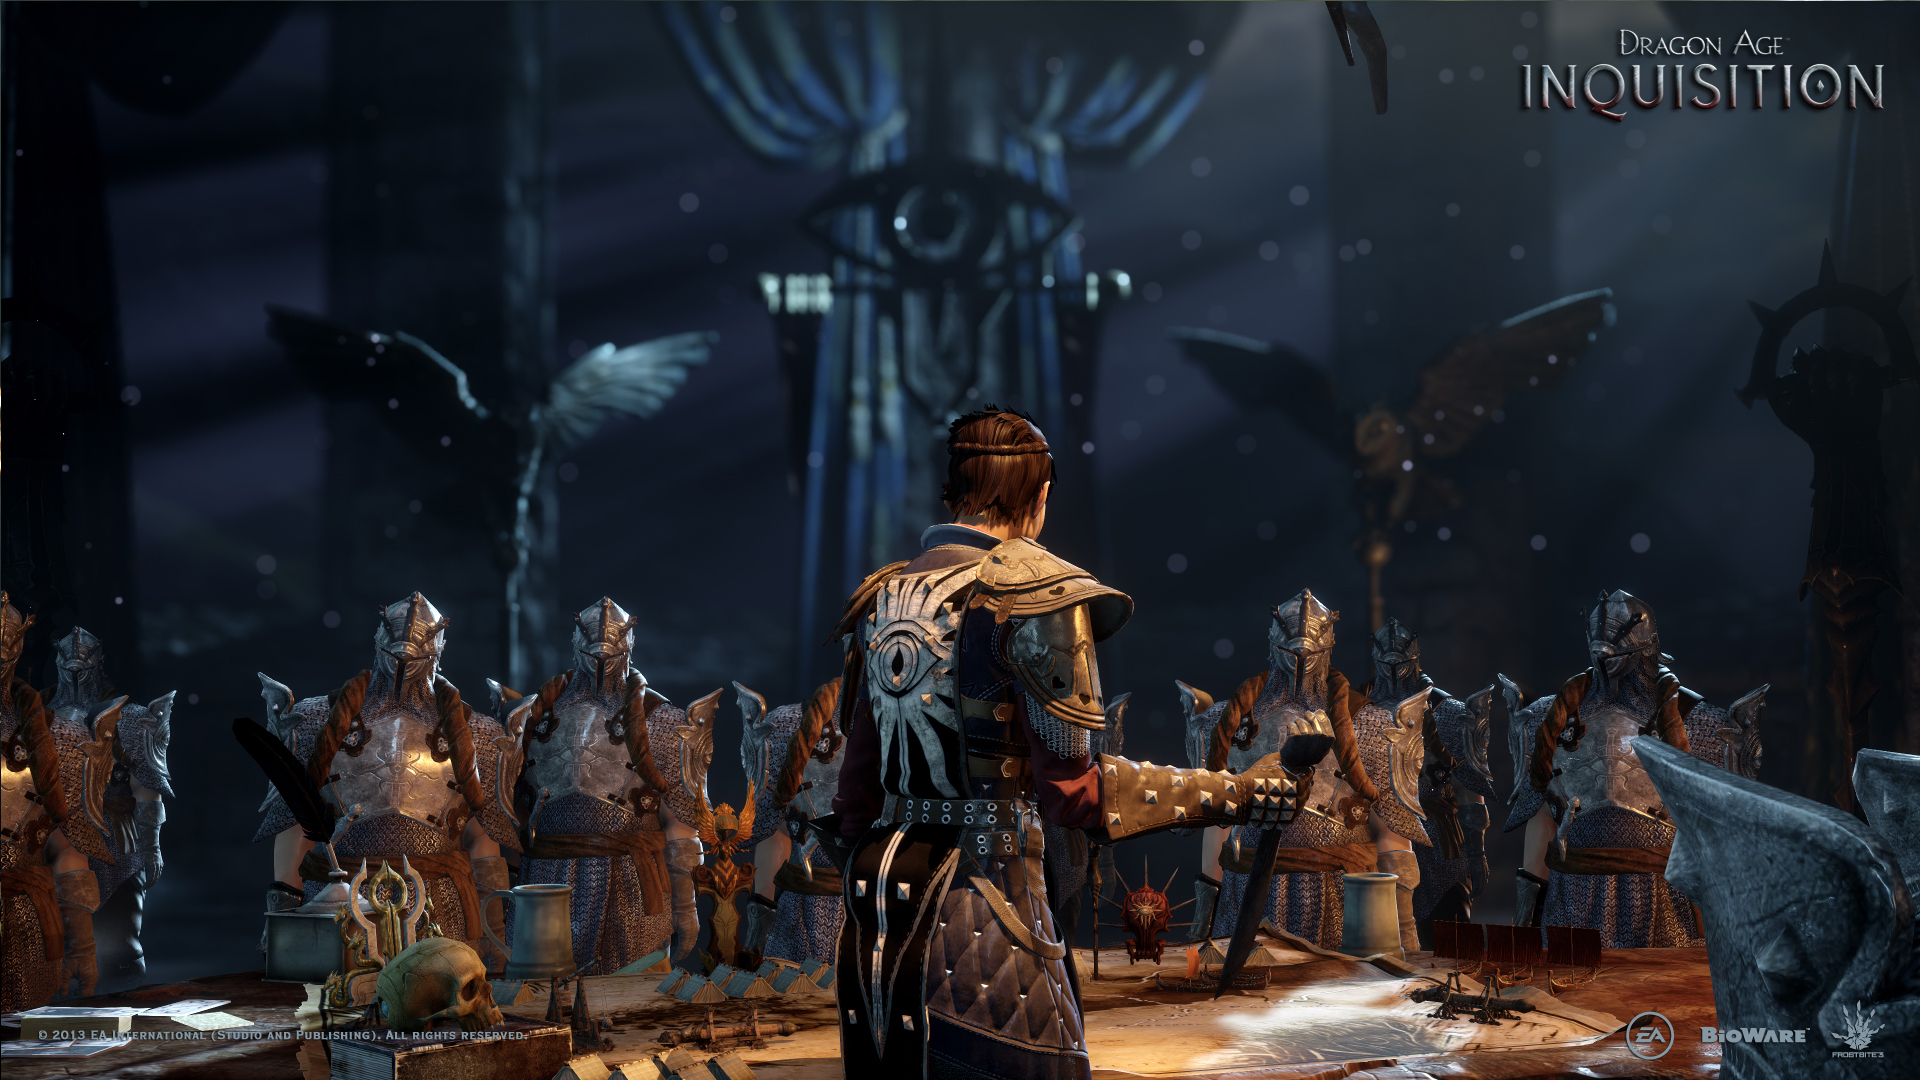 Dragon Age: Inquisition tendrá un modo para capturar, gestionar y defender fortalezas